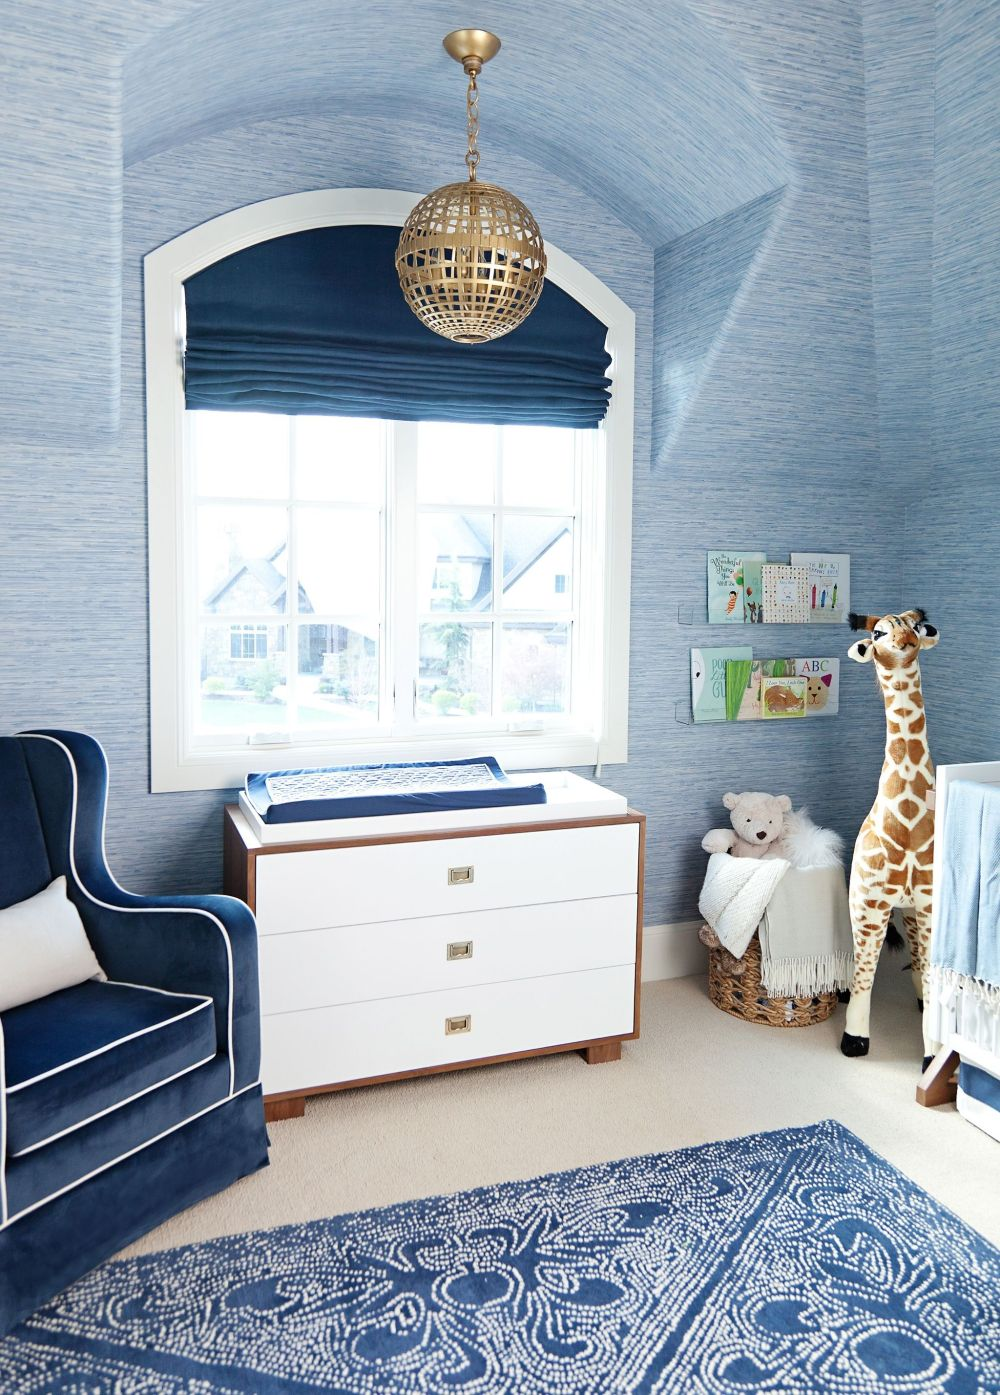 1572969145 551 20 beautiful blue rooms ideas to decorate with blue - 20 Beautiful Blue Rooms – Ideas To Decorate With Blue